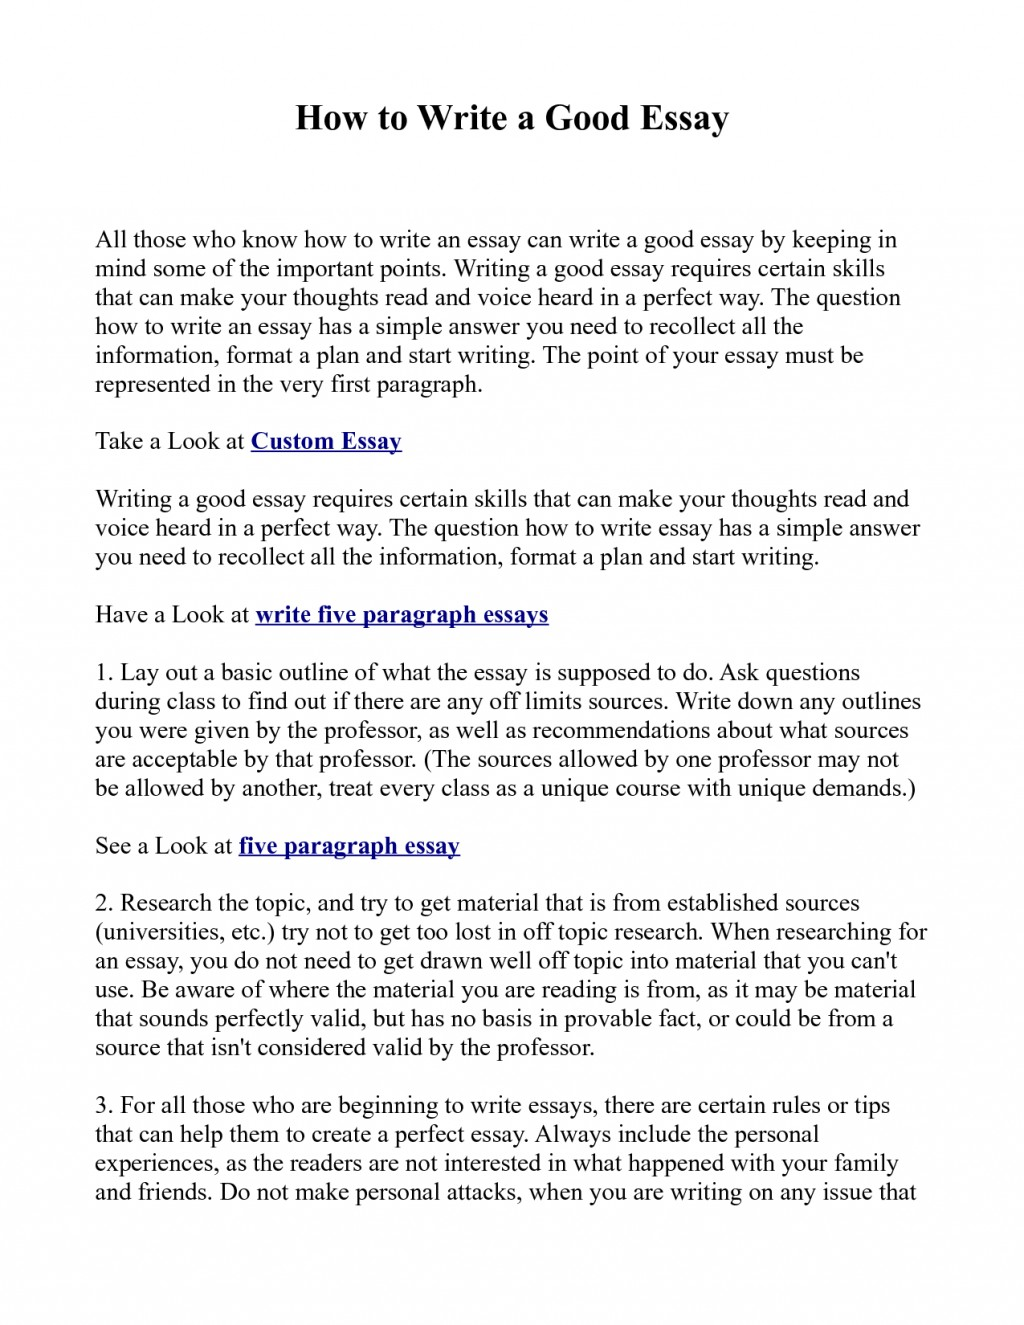 008 Best Essay Topics Ex1id5s6cl Surprising Research Paper For College Student High School Argumentative Large